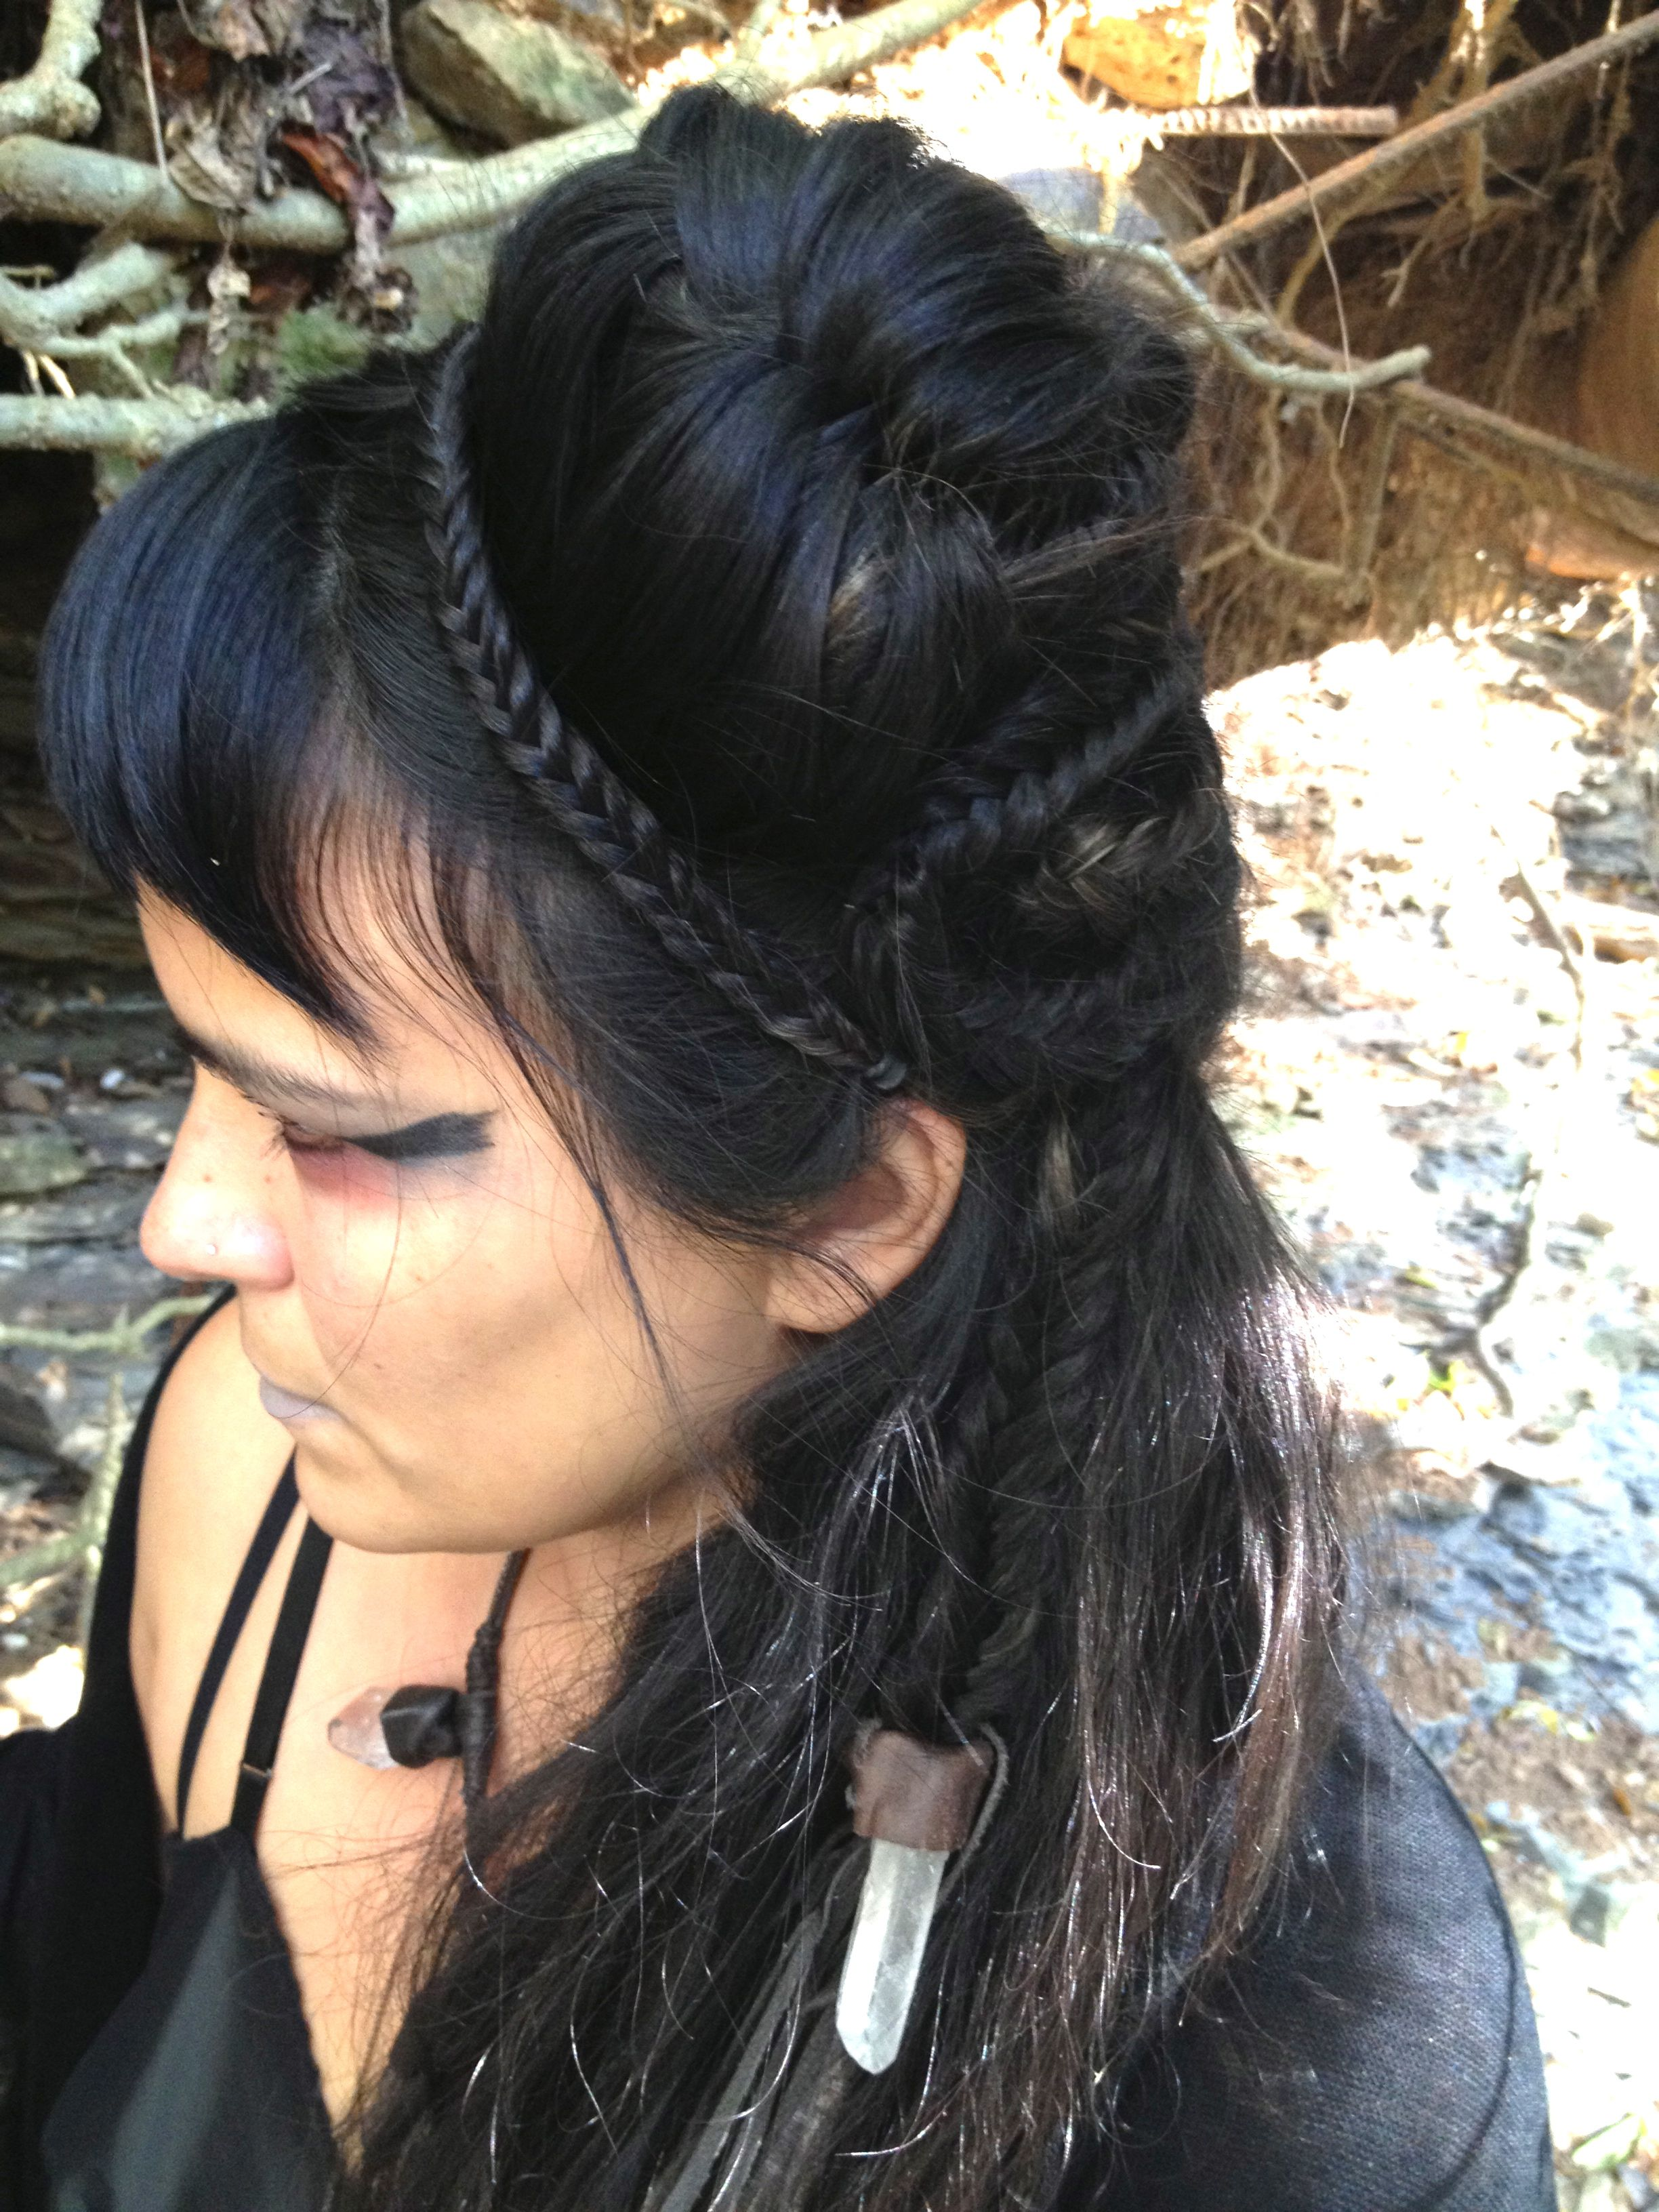 Witch Hairstyles Witch Hairstyles  Witch 2  Hair  Pinterest  Witches Hair Girls